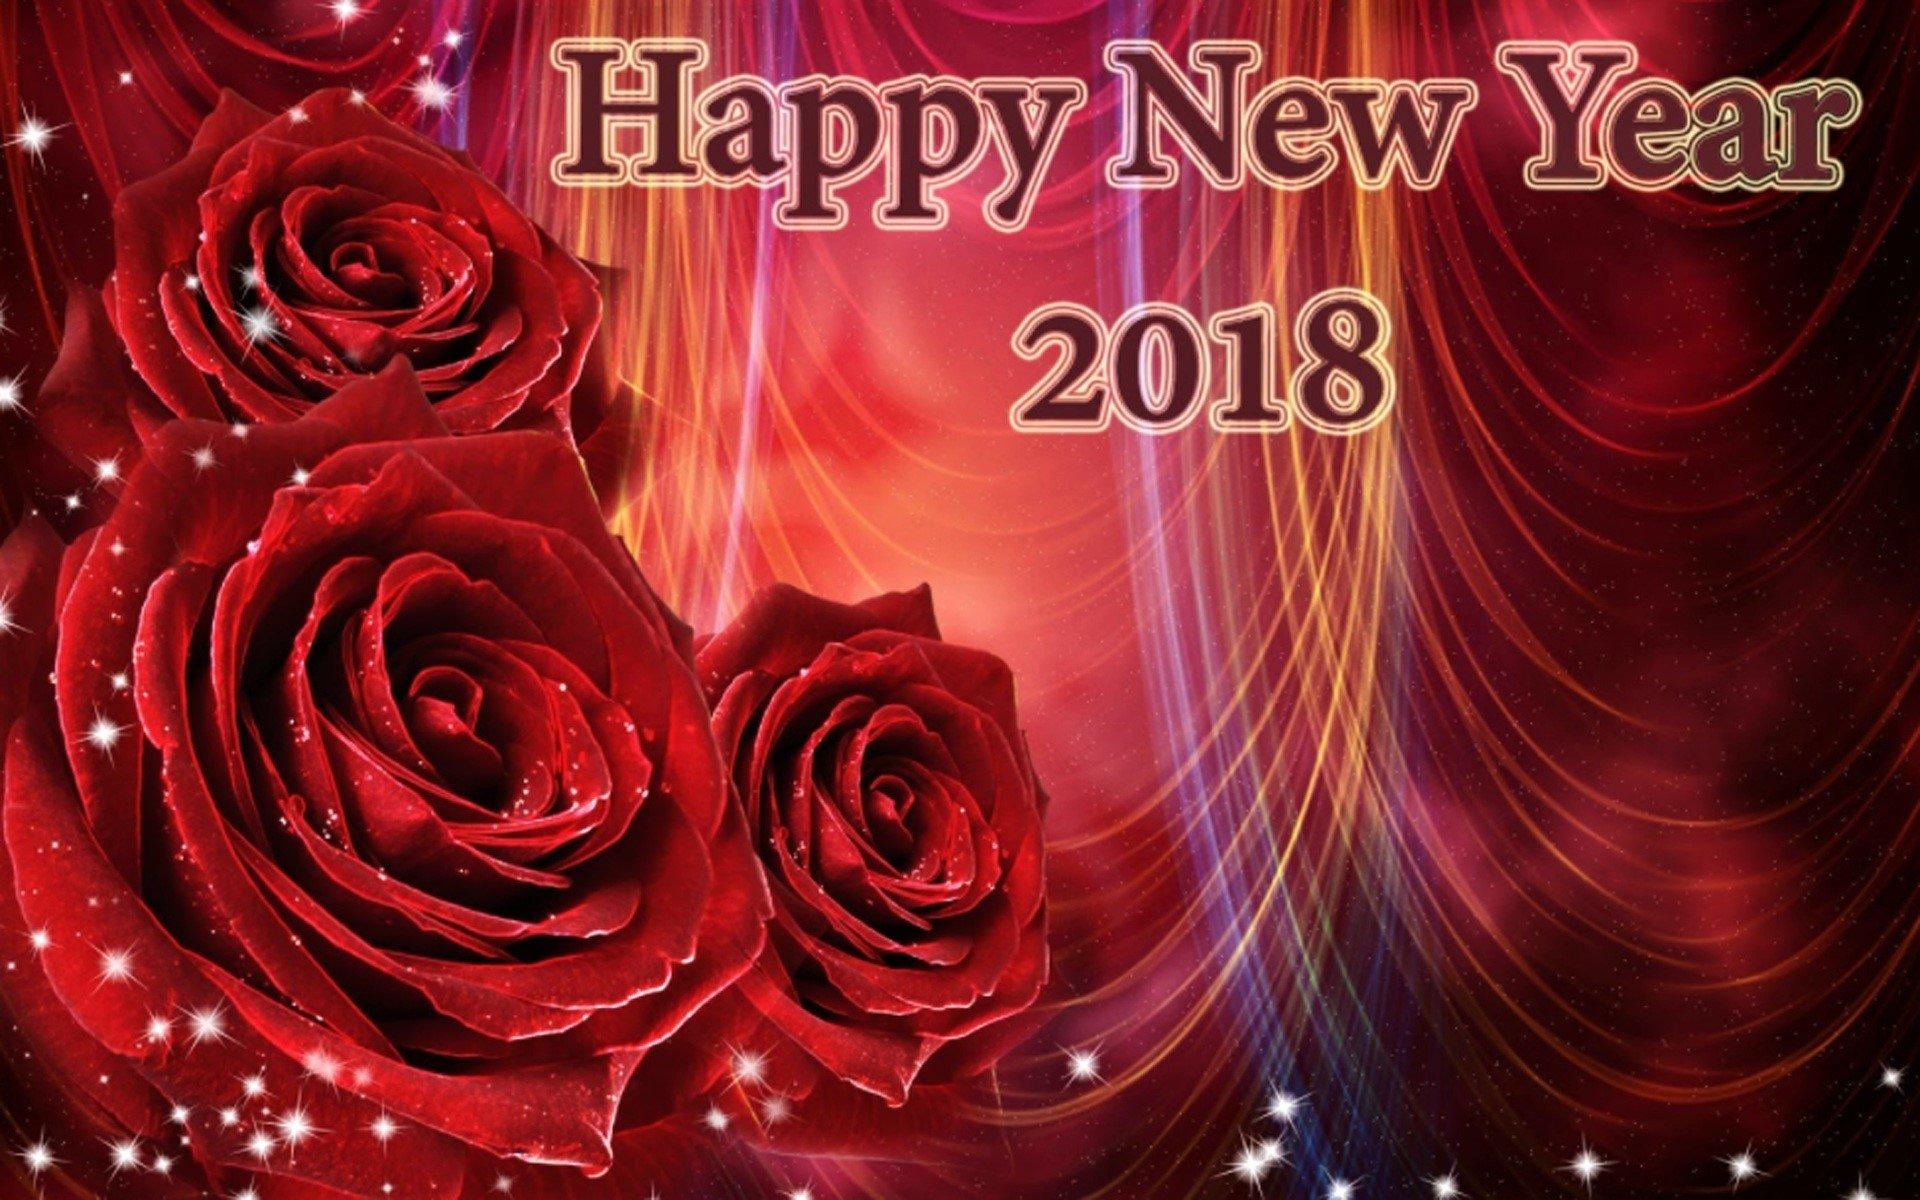 new year 2018 red rose wallpapers id880829